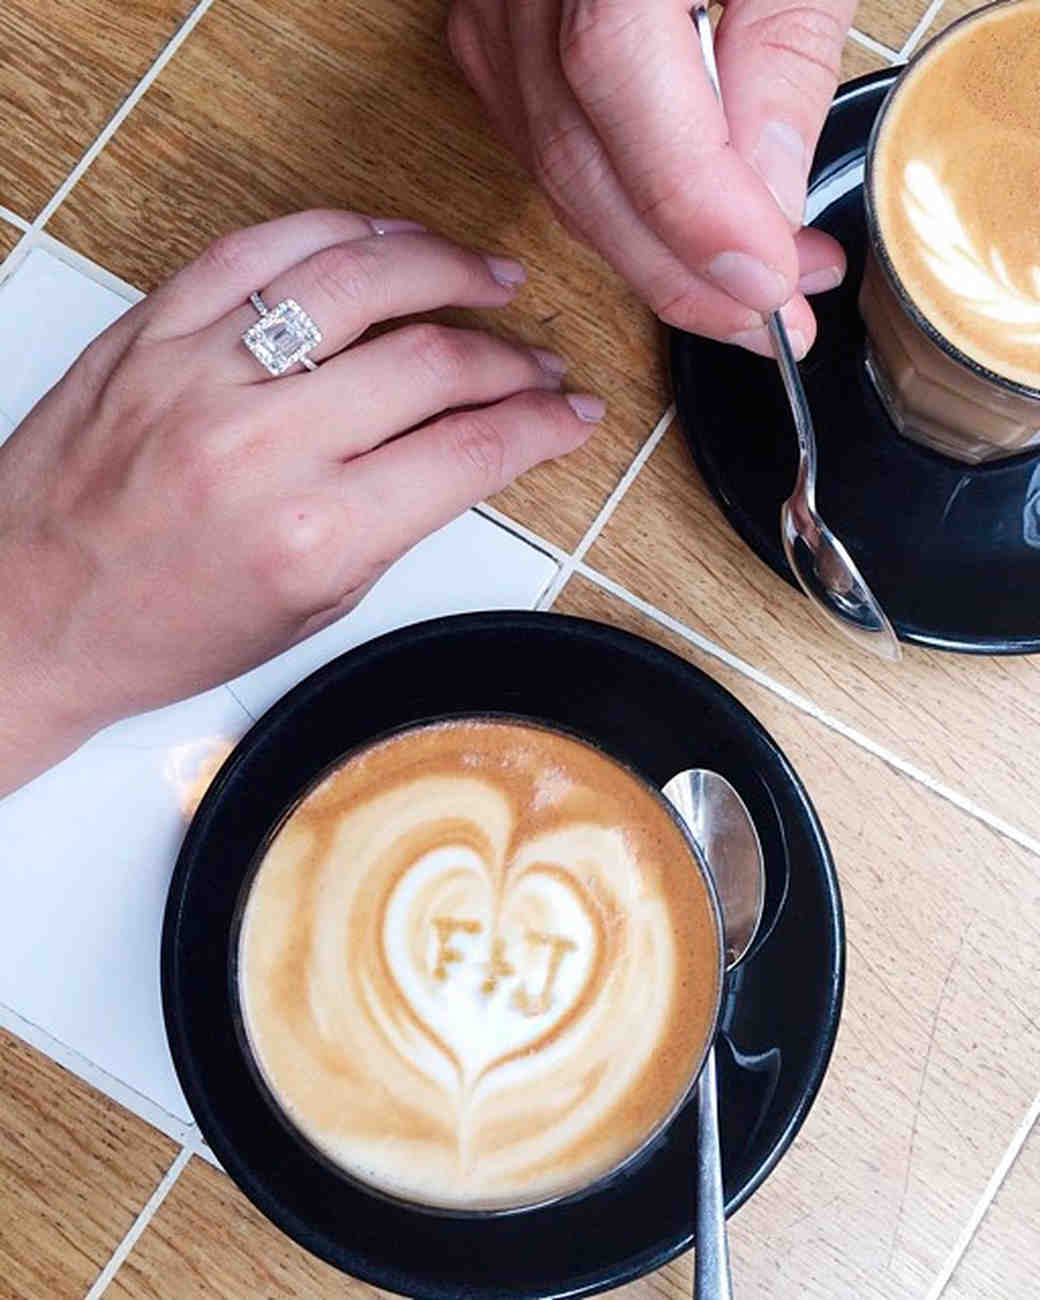 instagram-engagement-ring-selfie-margo-and-me-lattes-0116.jpg